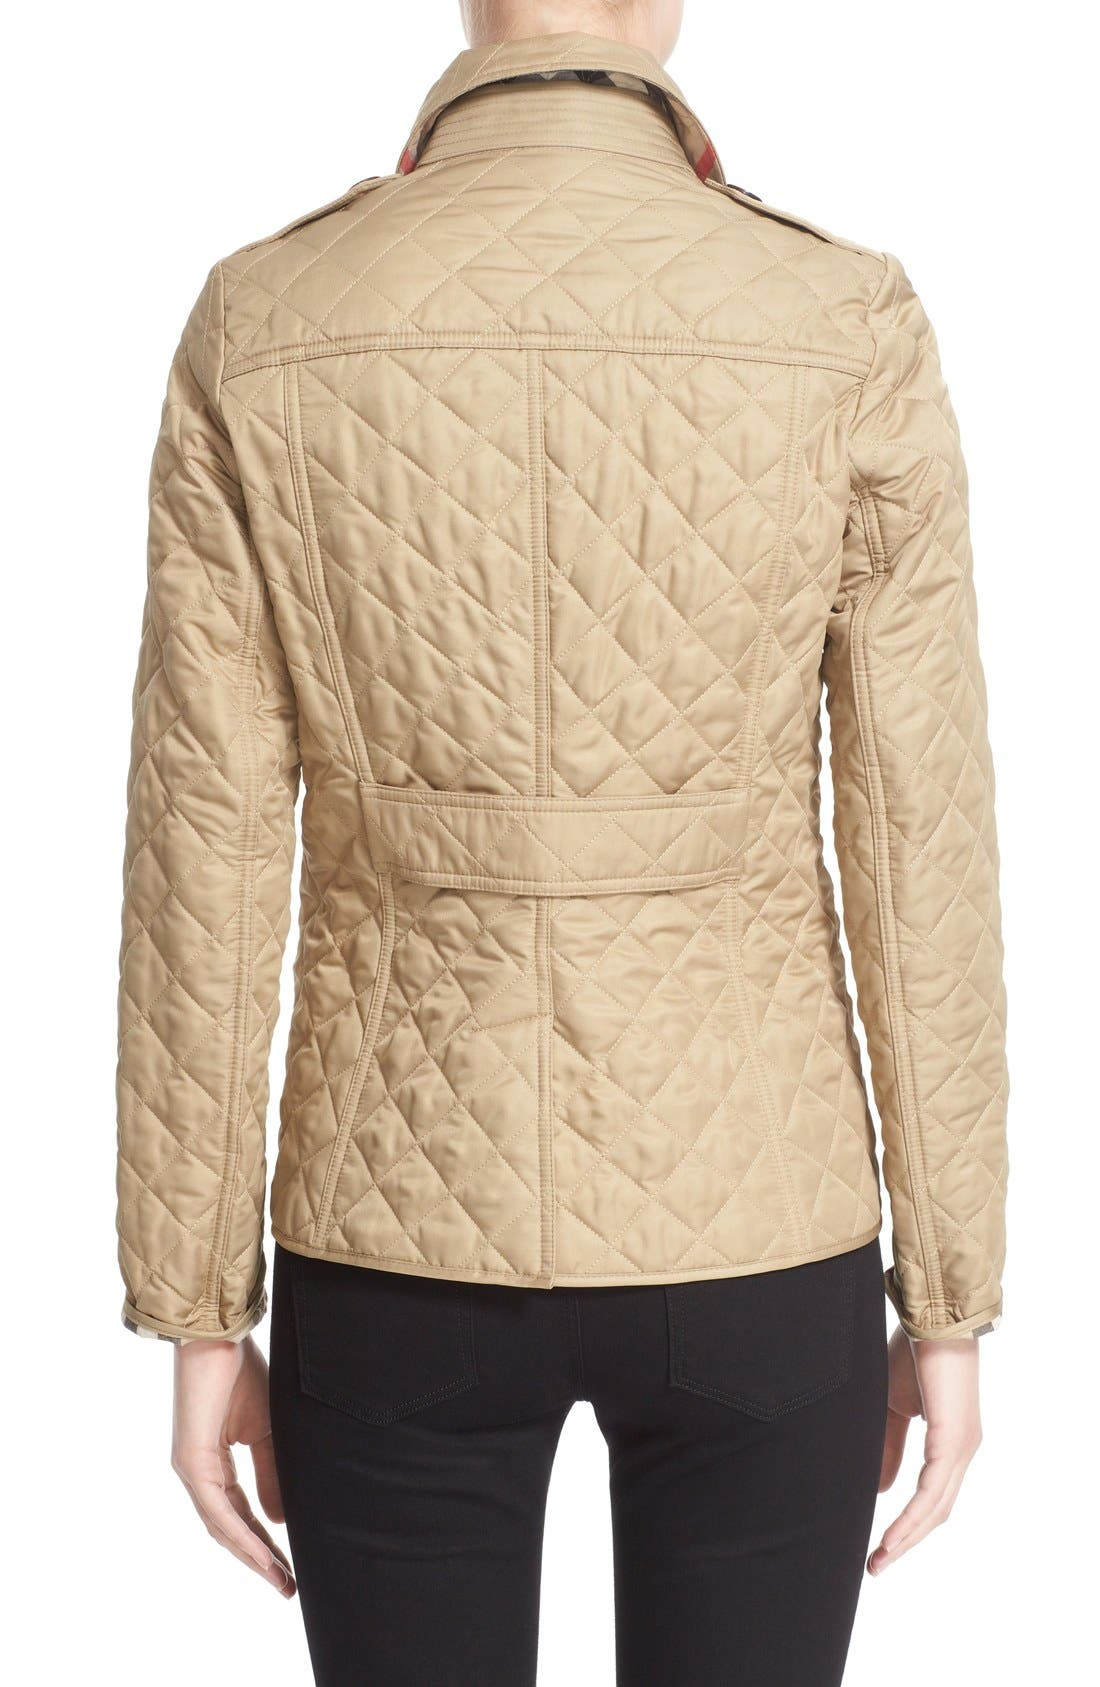 Ashurst Quilted Jacket,                             Alternate thumbnail 3, color,                             270